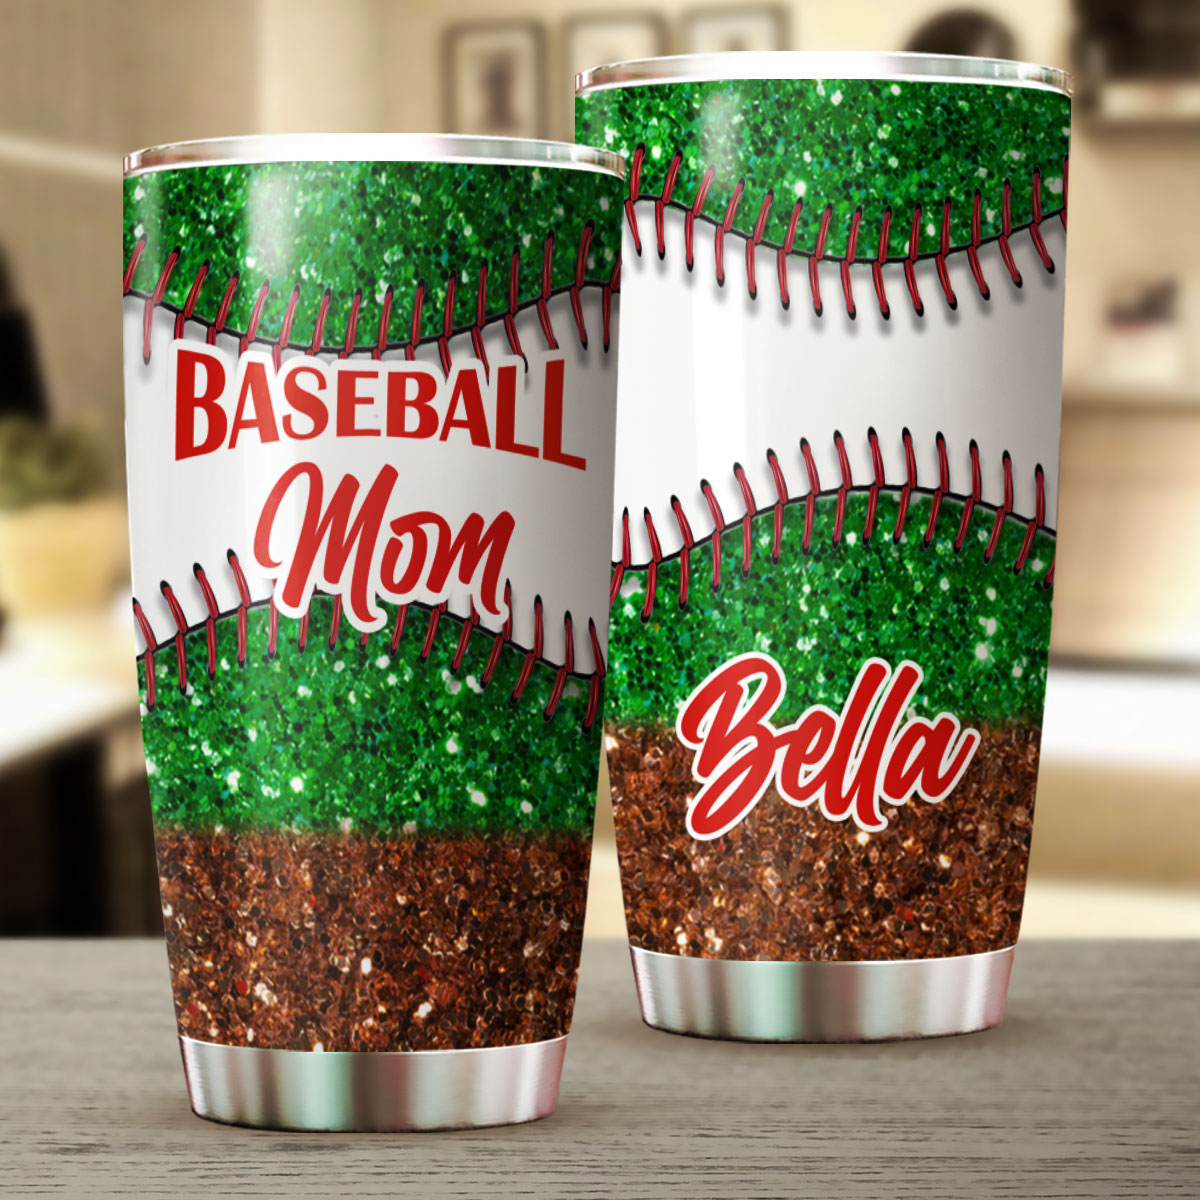 Baseball Mom Sparkly Personalized Stainless Steel Tumbler